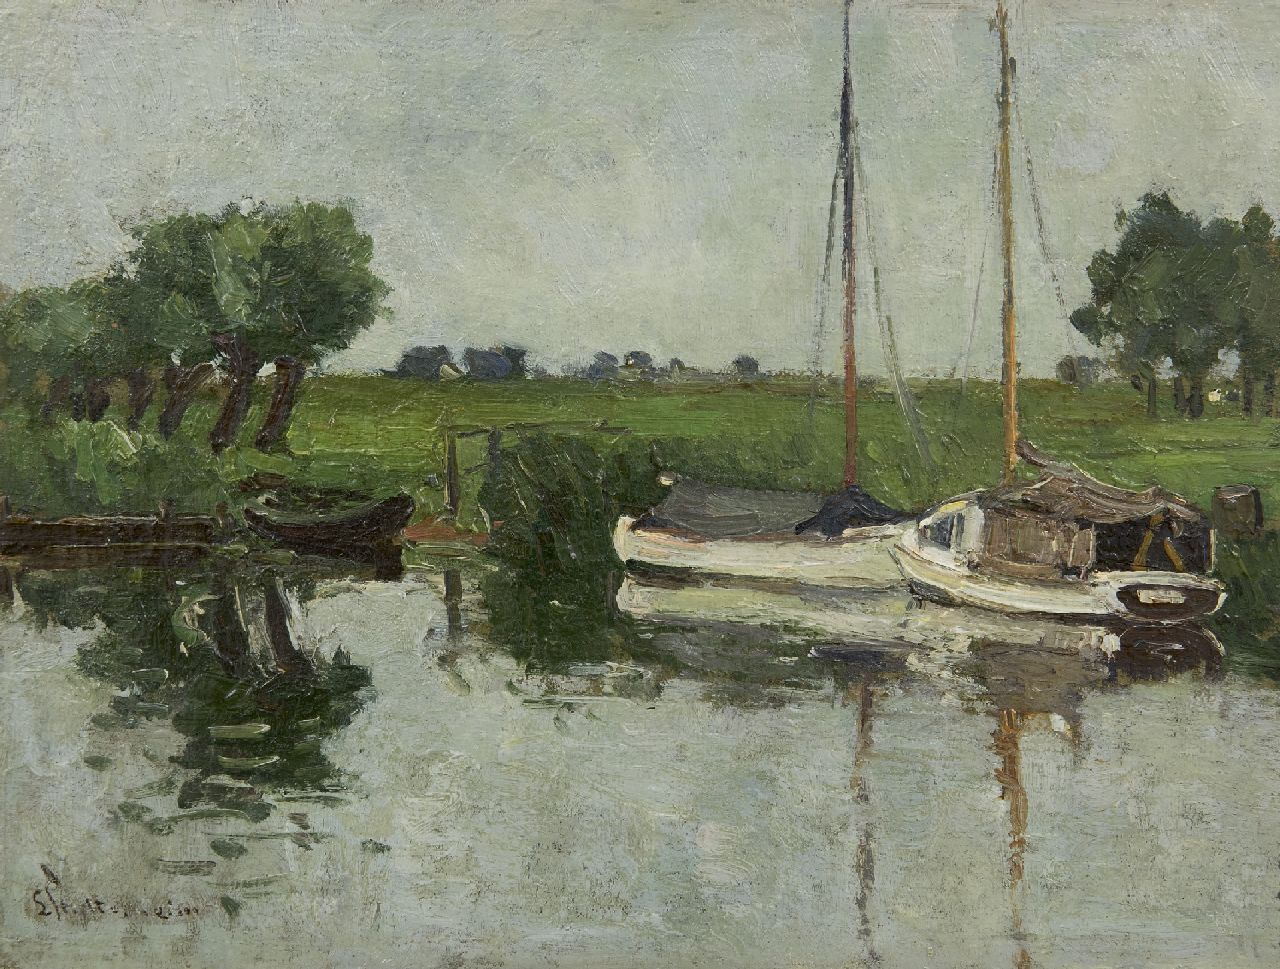 Stutterheim L.P.  | Lodewijk Philippus 'Louis' Stutterheim | Paintings offered for sale | Sailing ships in the river Eem near Soest, oil on panel 25.1 x 33.1 cm, signed l.l.